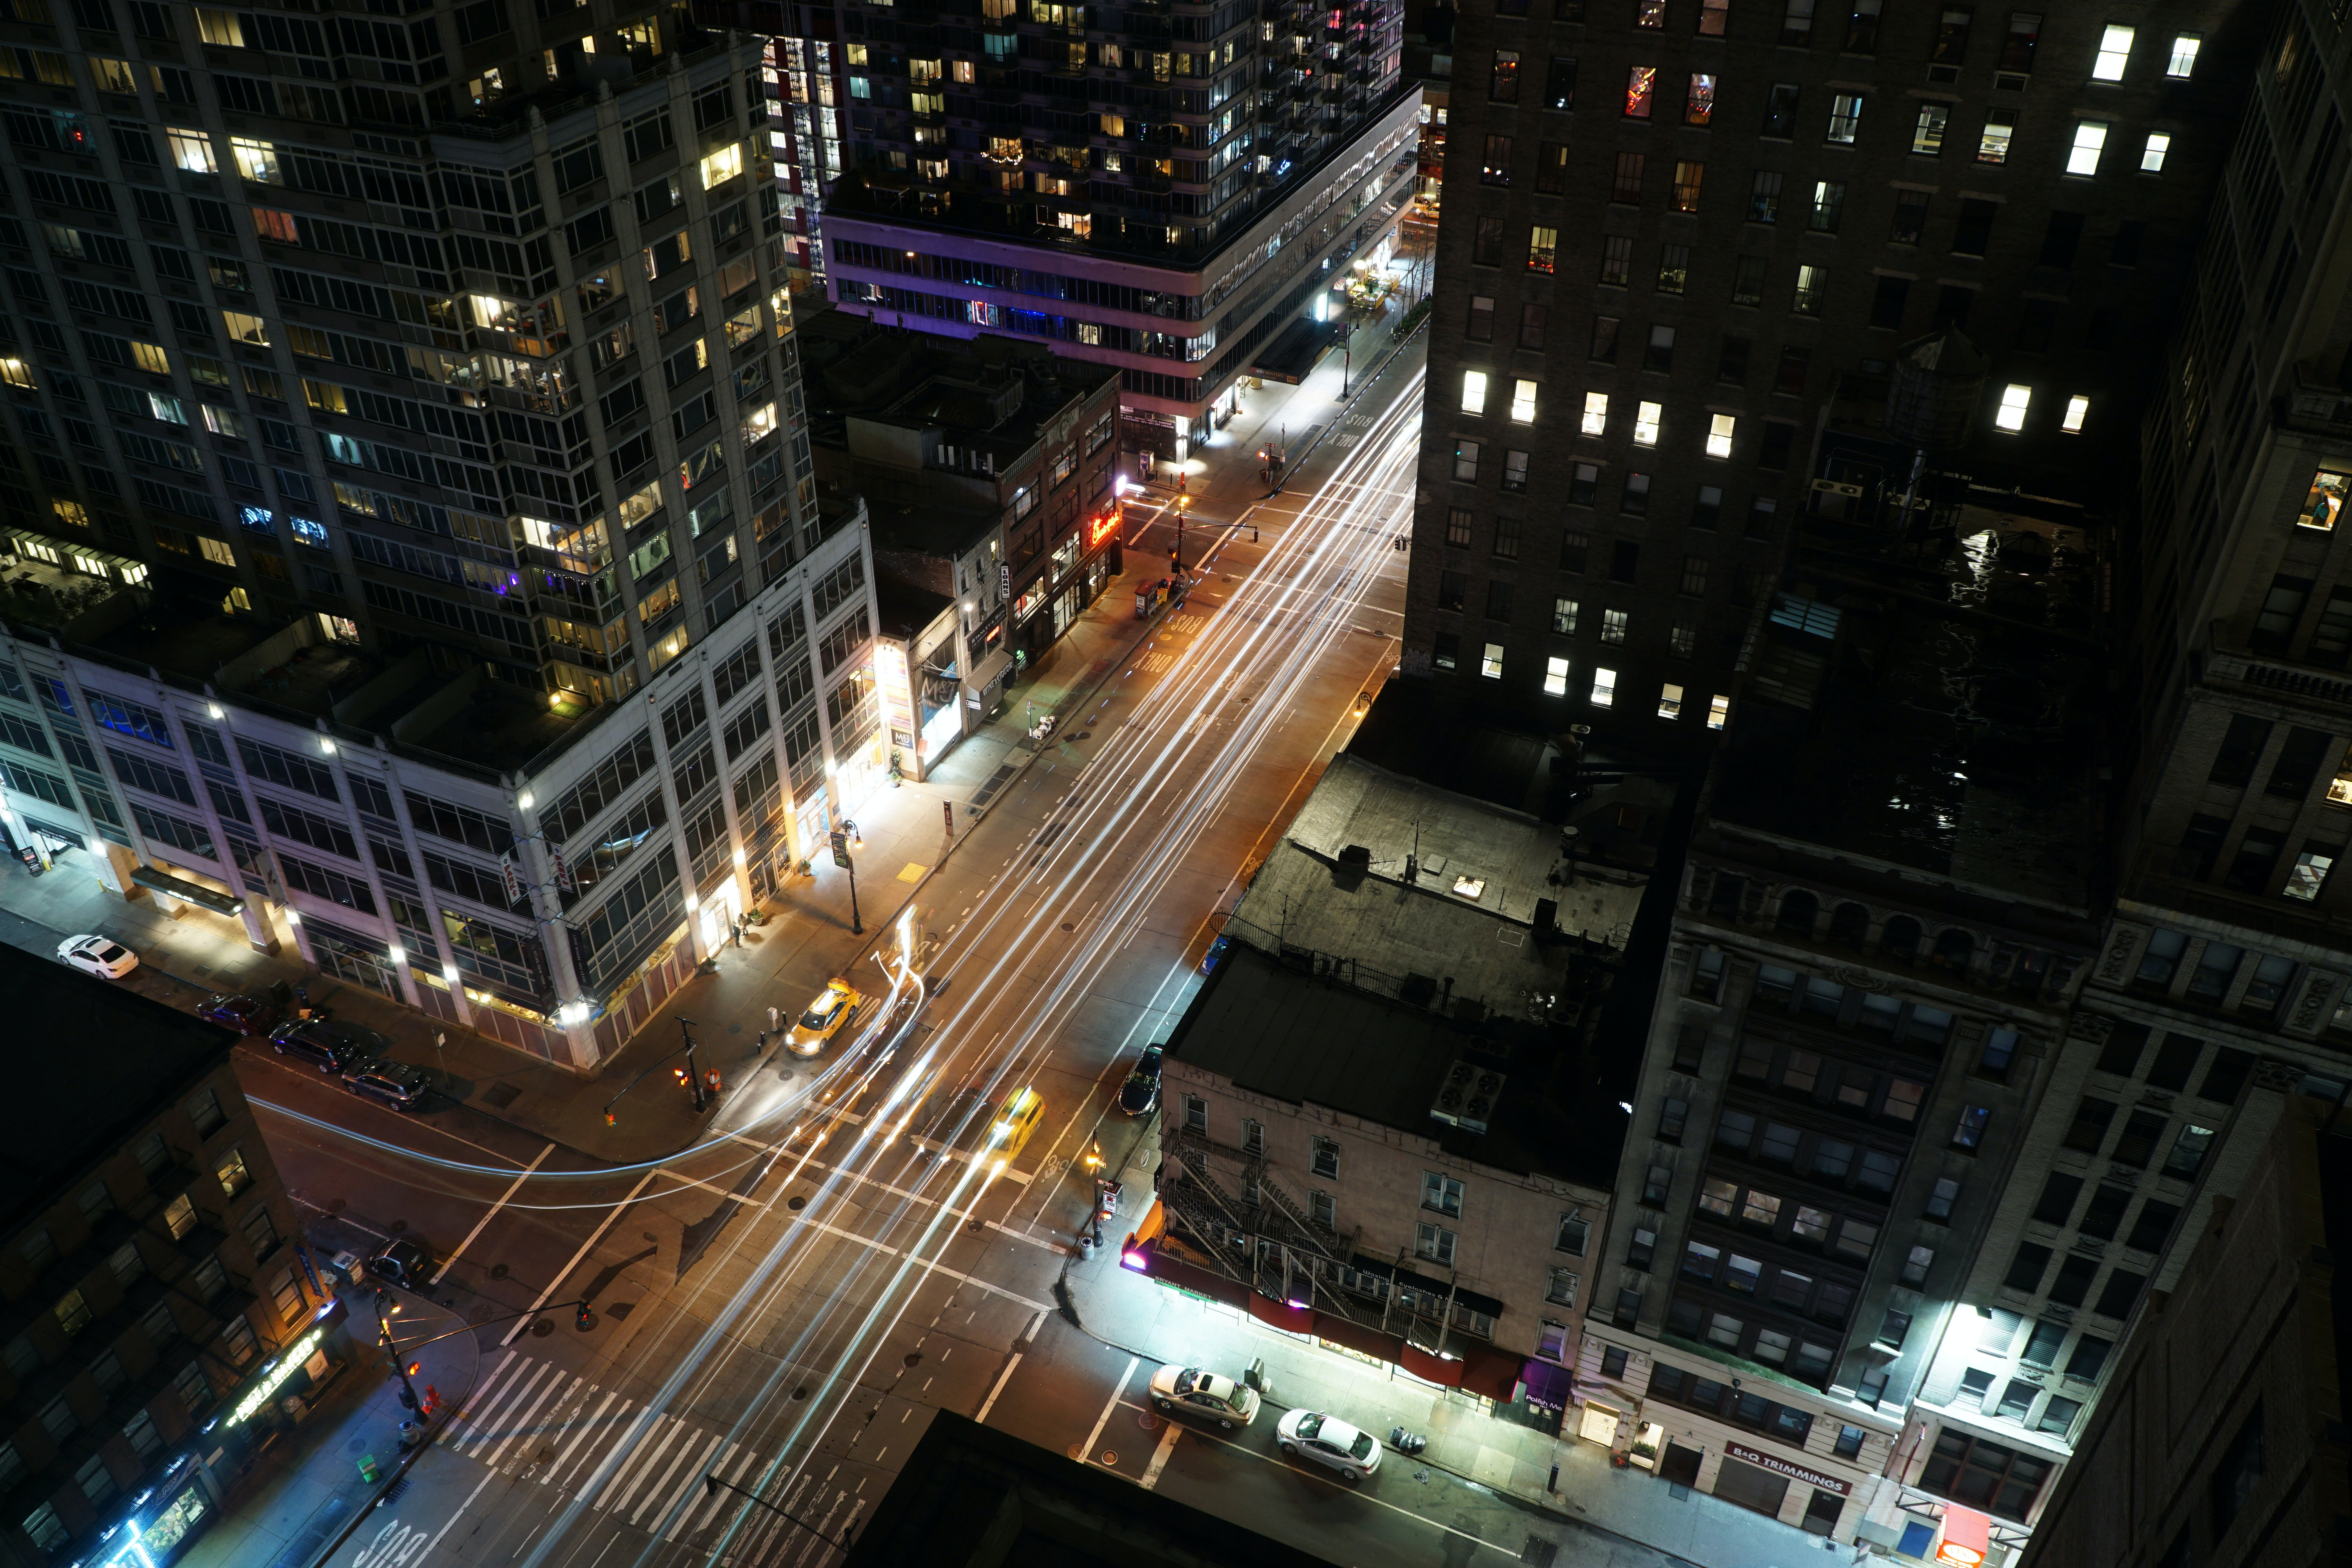 timelapse photograph of street and concrete structures